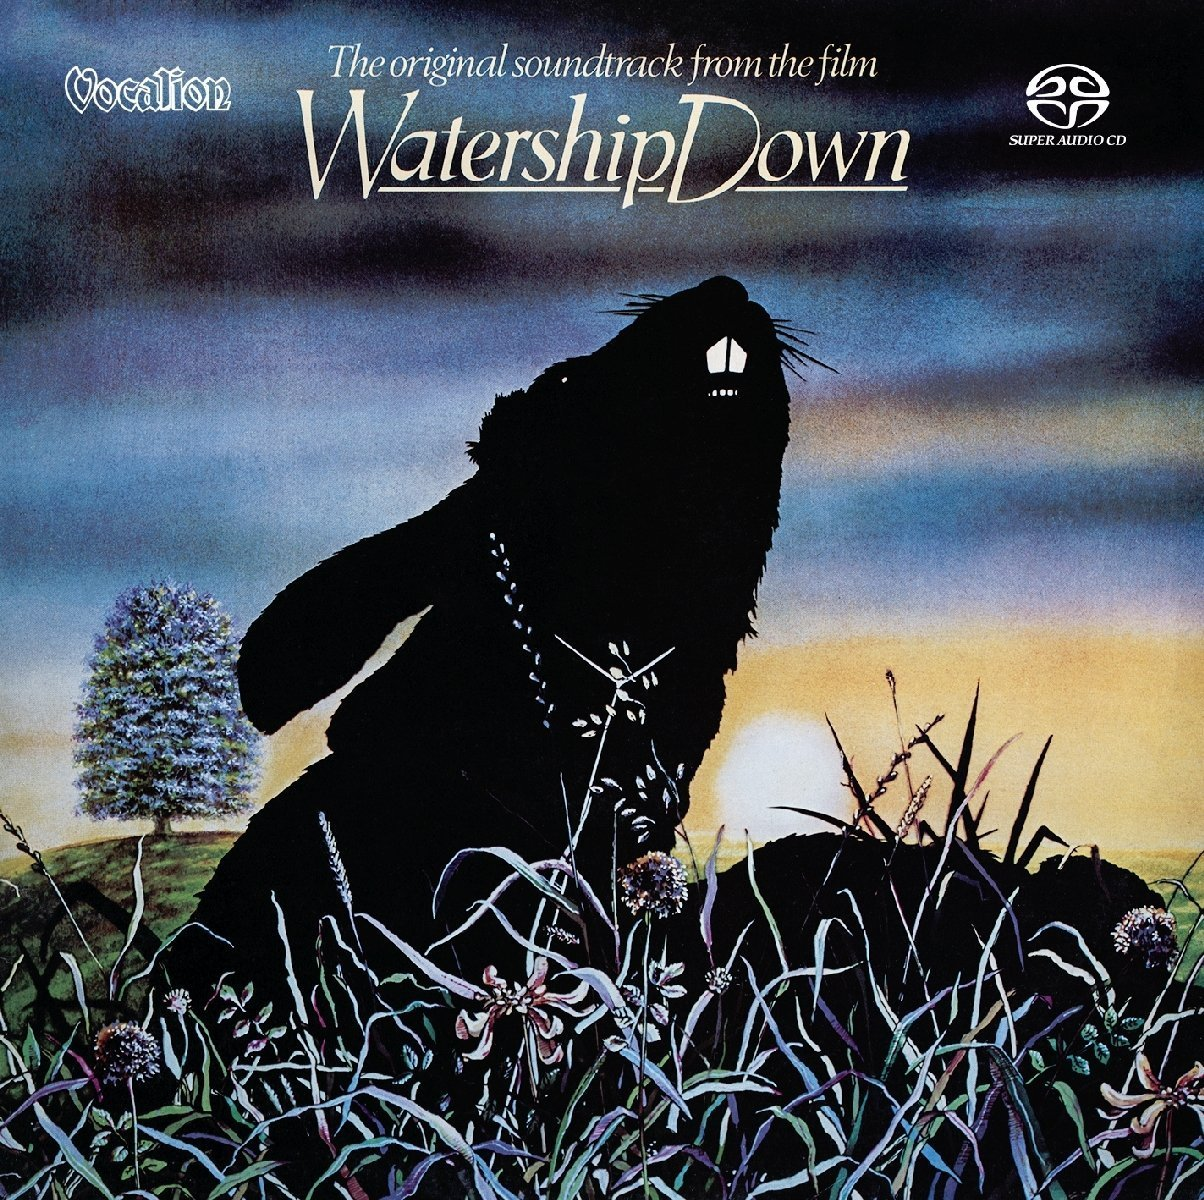 ost 02 17 R watership down